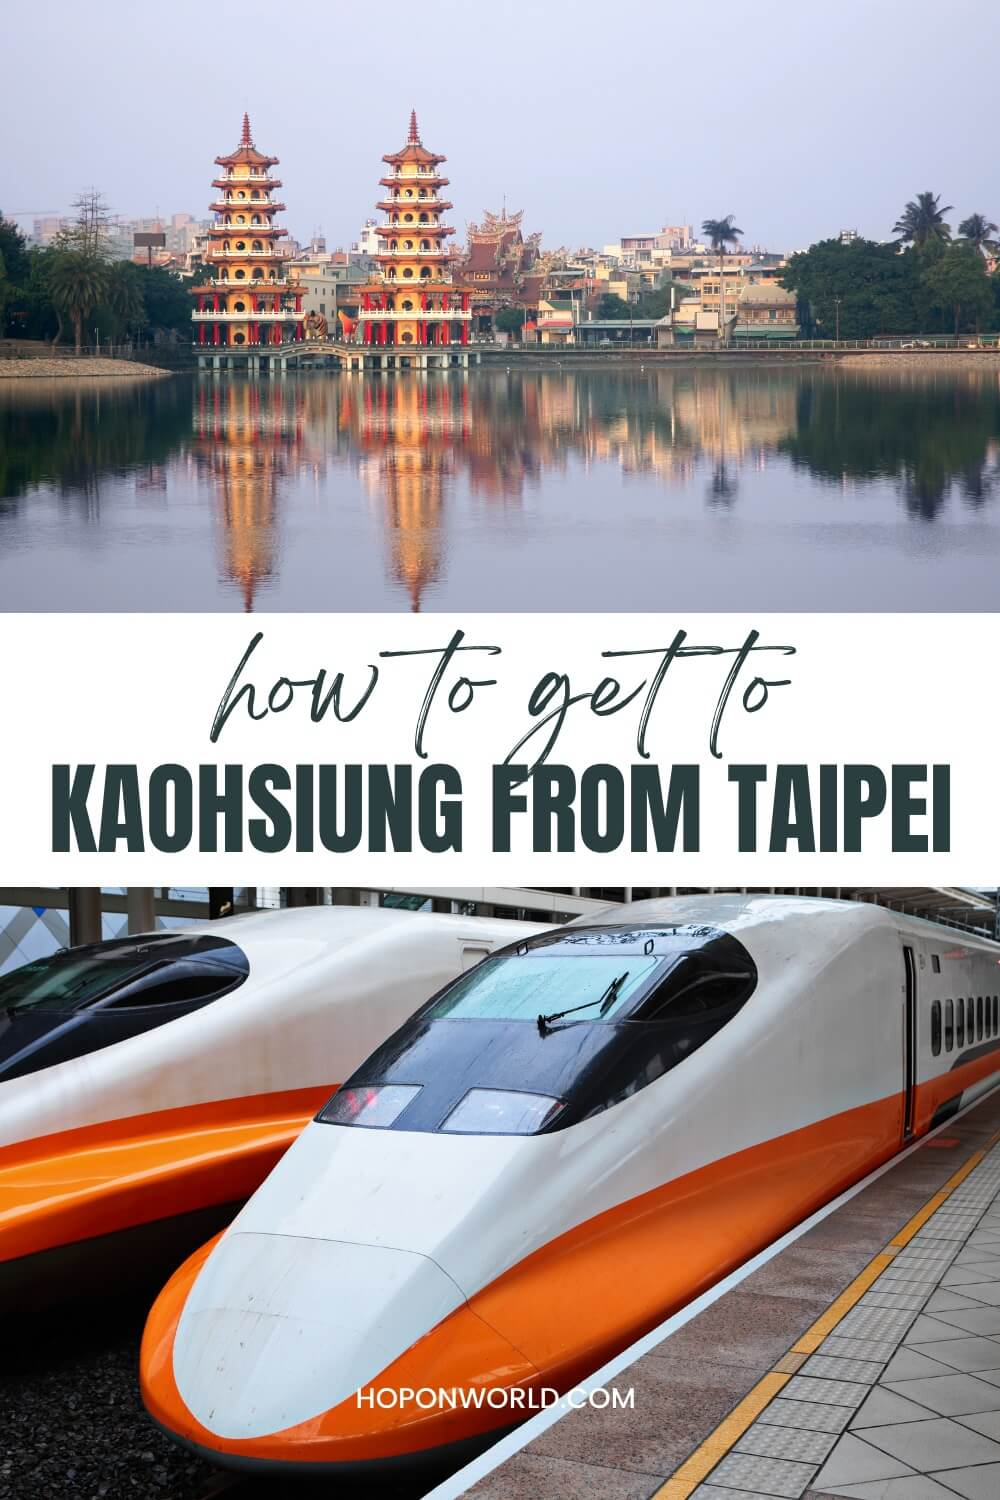 Planning a trip to Kaohsiung City from Taipei but not sure how to get there? Here's a detailed transport guide to help you find the easiest route from Taipei to Kaohsiung for you! Kaohsiung Taiwan | Kaohsiung Taiwan travel | Taiwan transportation | Kaohsiung travel